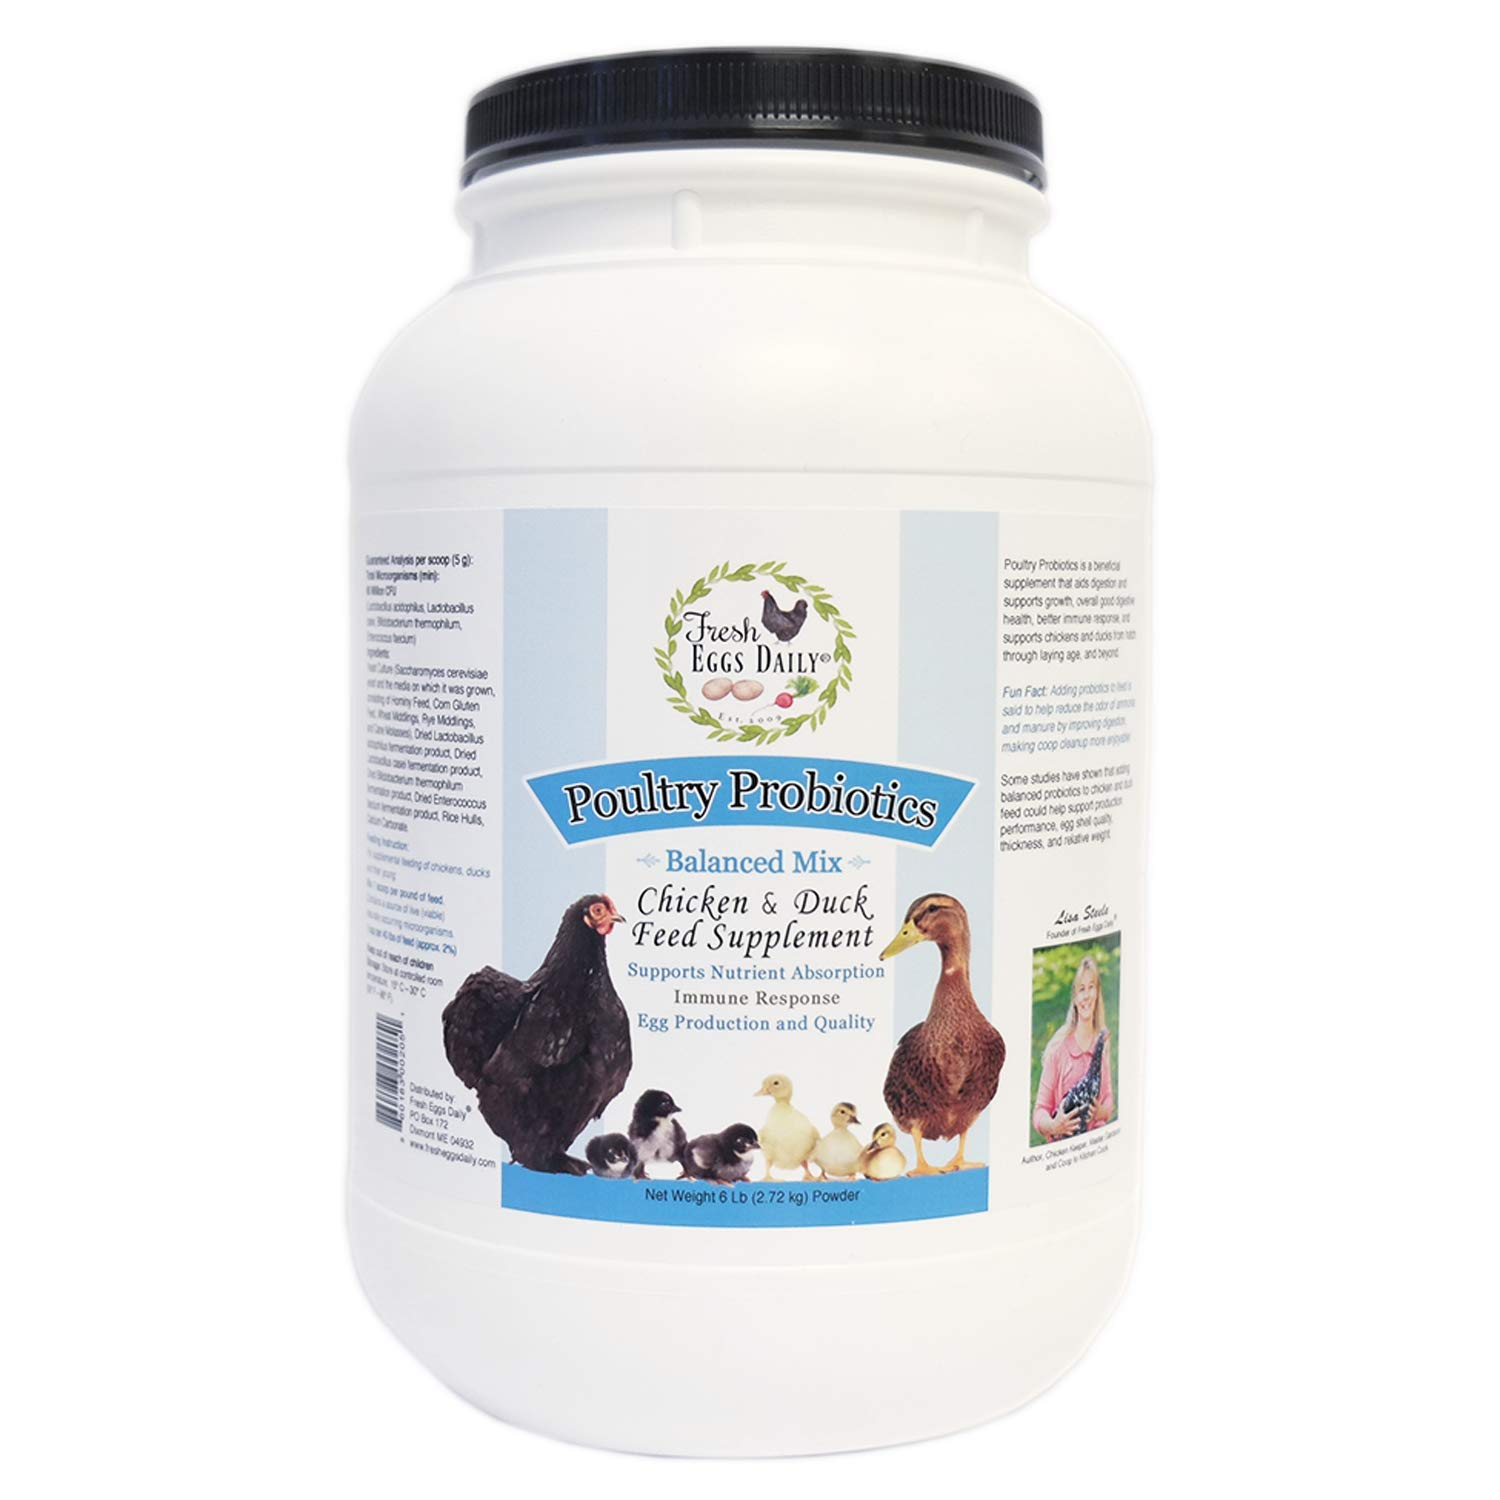 Fresh Eggs Daily Poultry Probiotics Chicken & Duck Feed Supplement 6LB by Fresh Eggs Daily